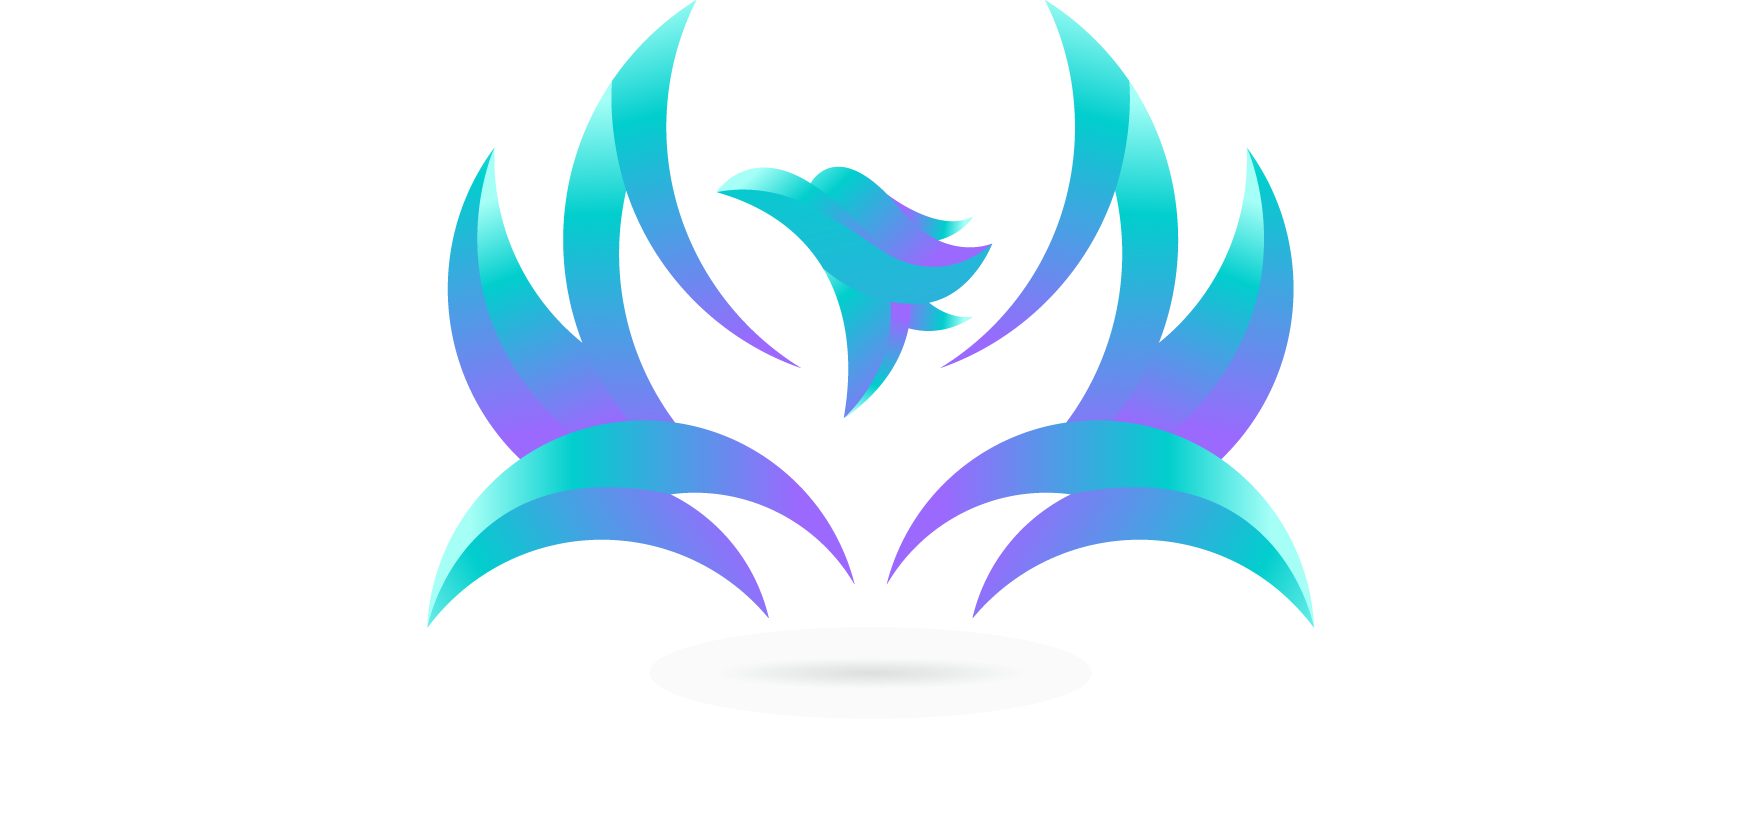 Therapist of Color Collaborative logo and sign